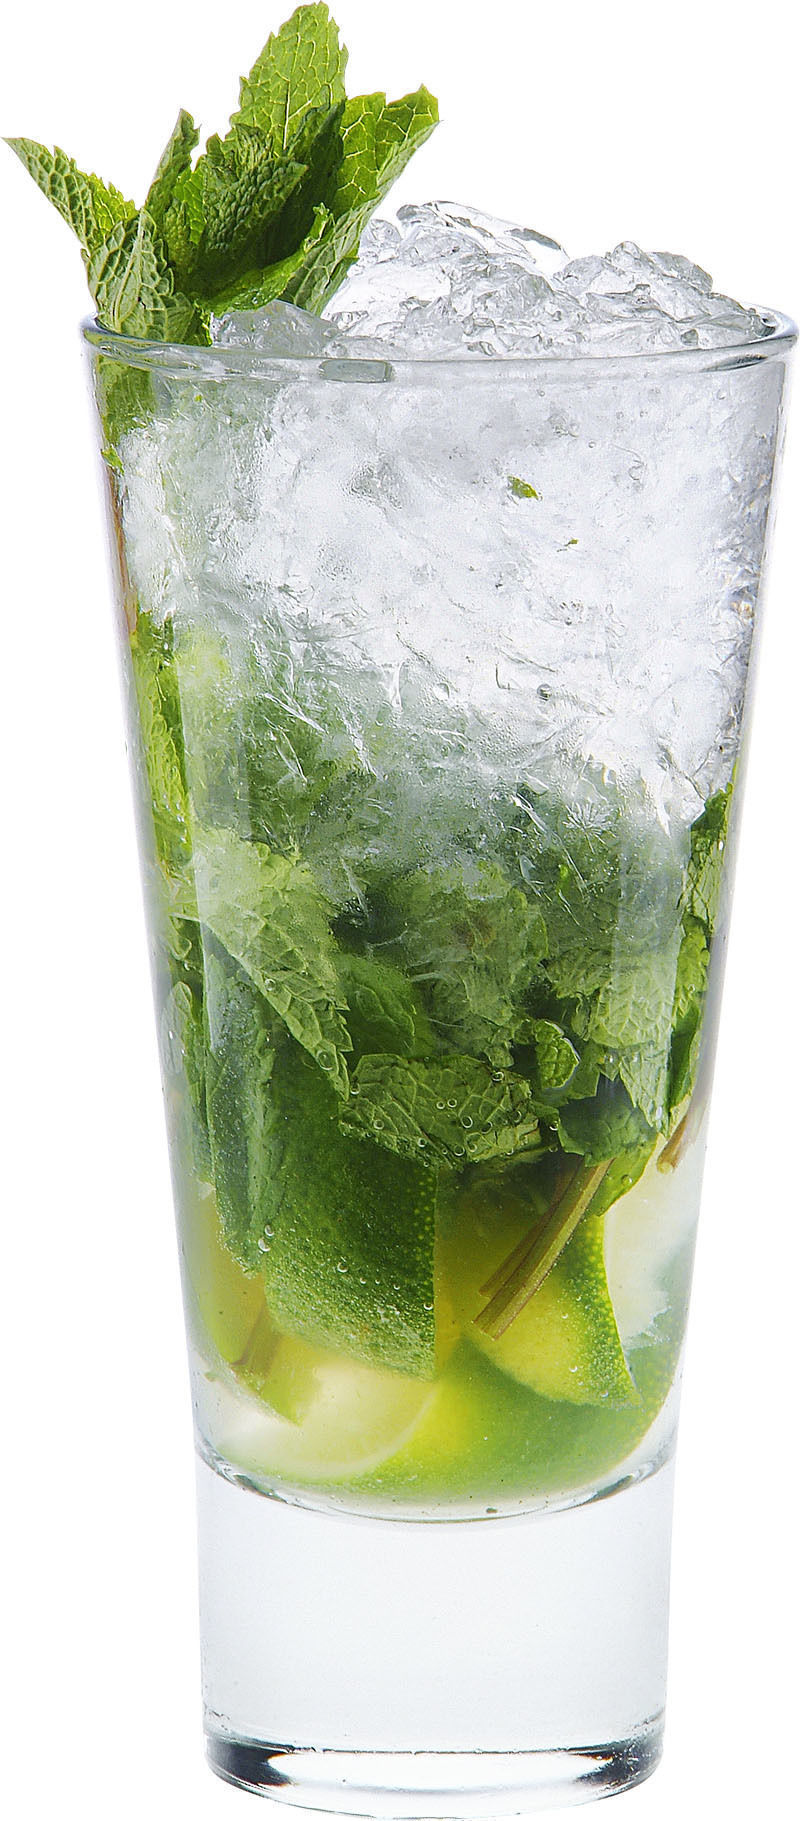 How to Make the Virgin Mojito